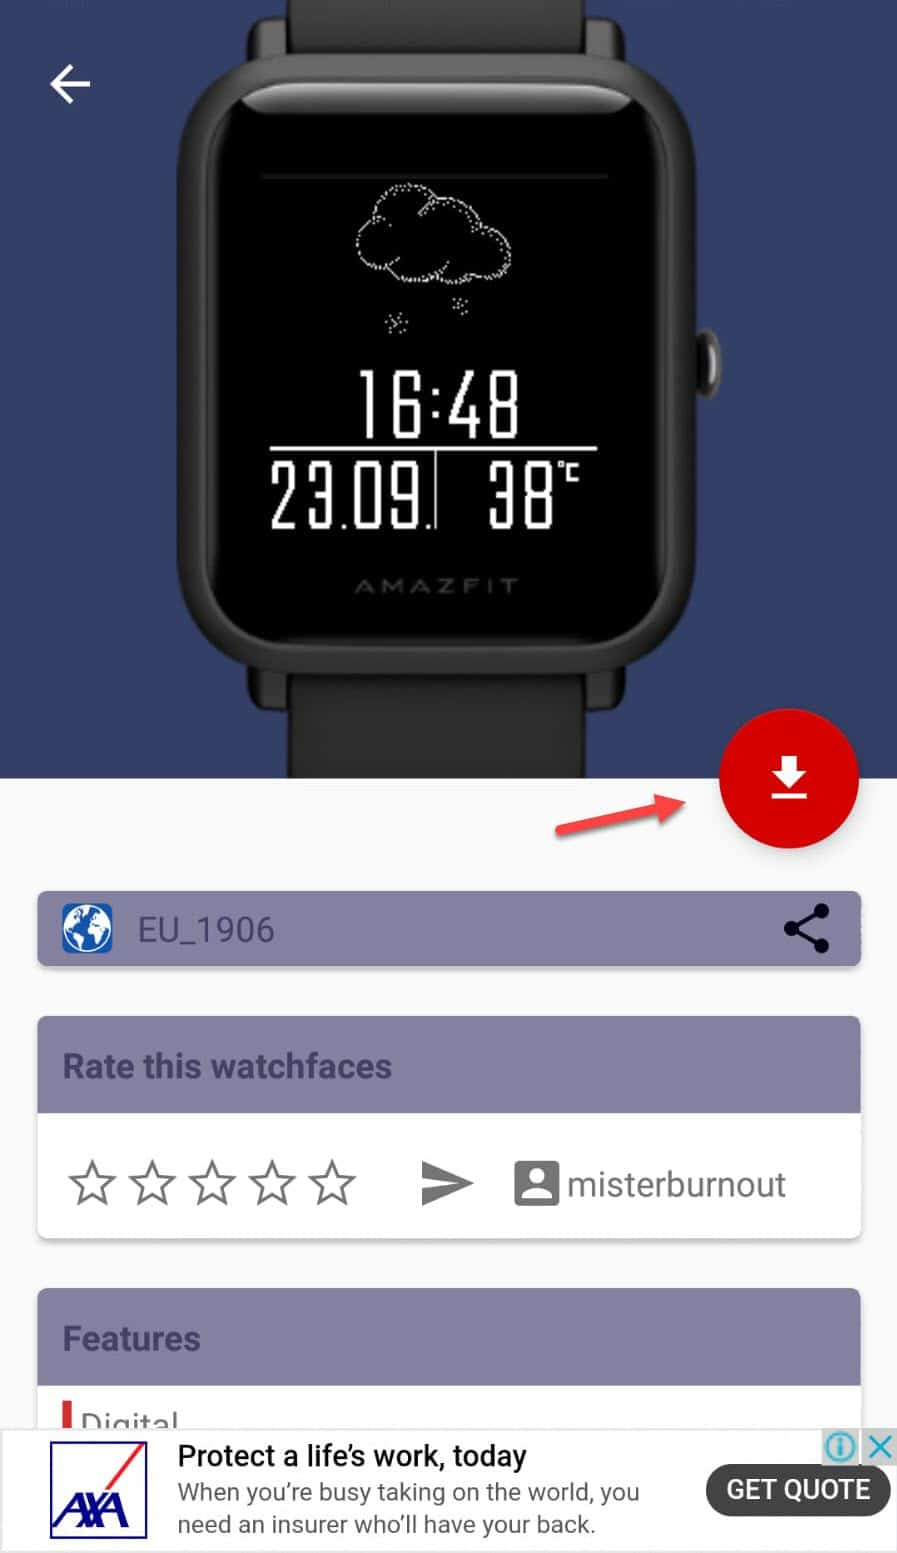 step 2 - Downloading Amazfit Custom watch face from the app